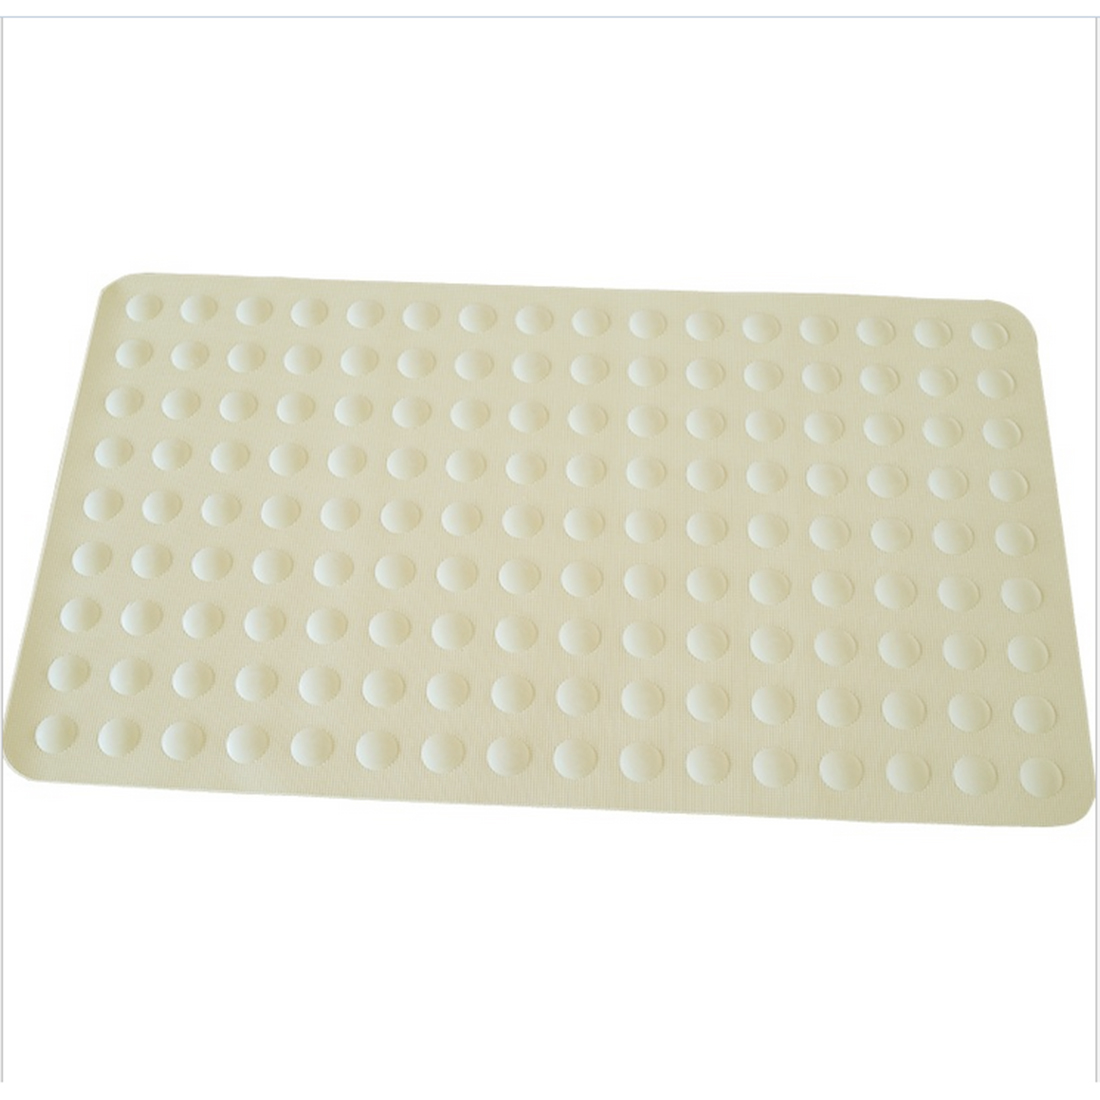 online buy wholesale rubber bath mats from china rubber bath mats 40 70cm non slip soft rubber massage bath mat shower pad with suction cup